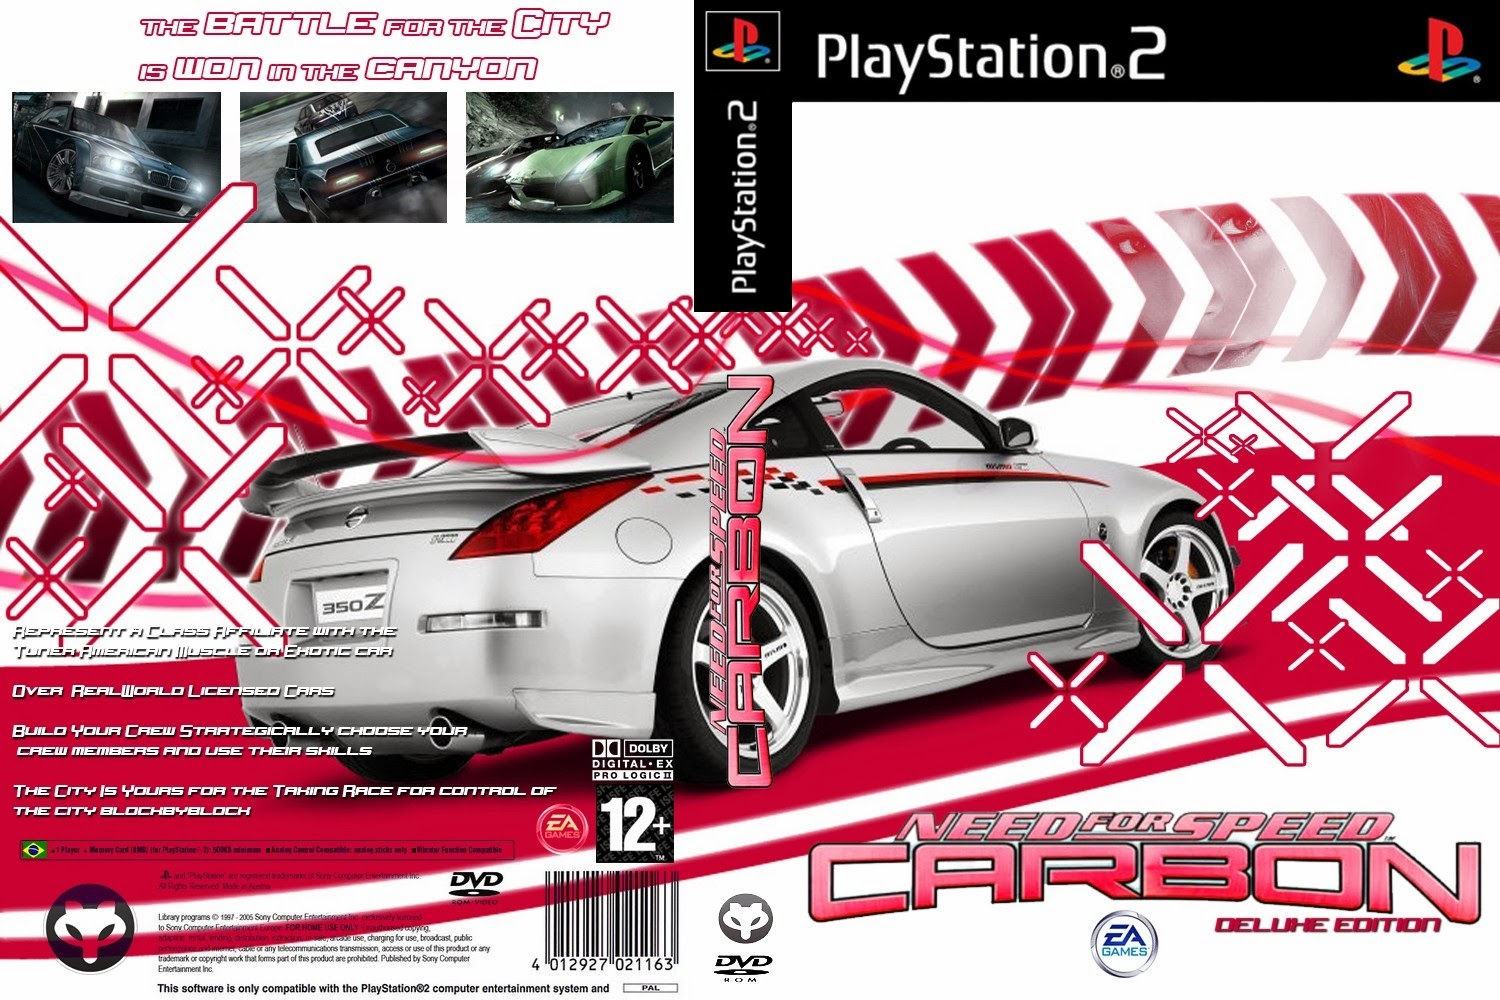 Nfs carbon ps2 | 'Need for Speed: Carbon' PS2 Cheats and Tips  2019